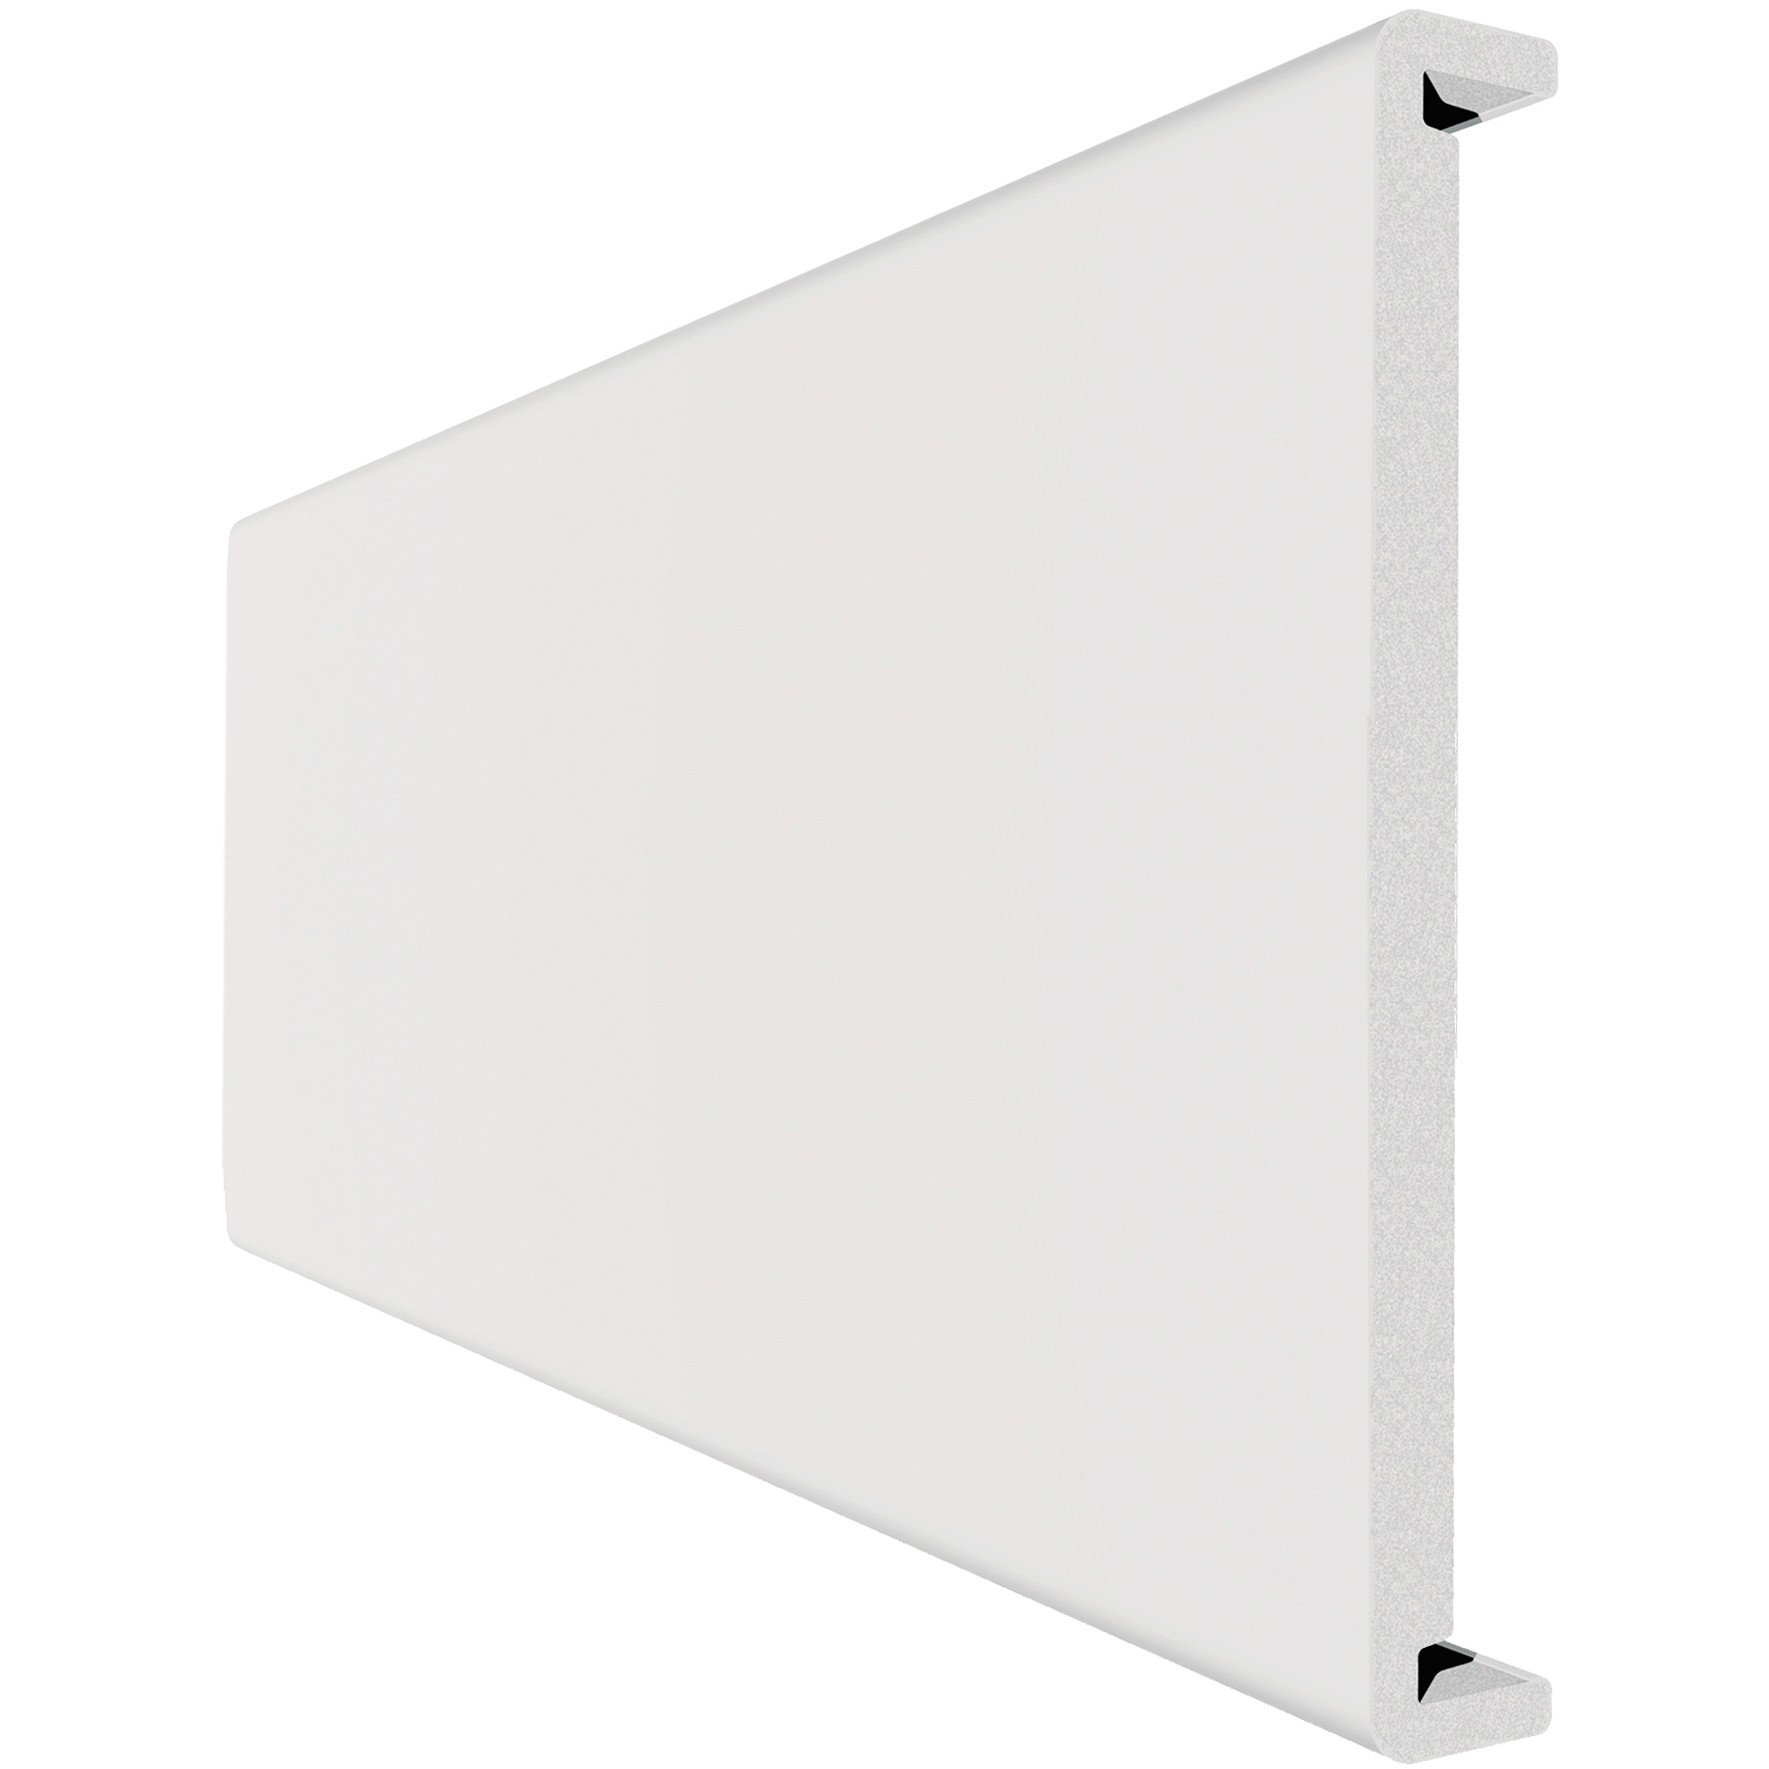 Freefoam Magnum Square Leg 18mm Double Sided Fascia Board - White, 410mm, 5 metre